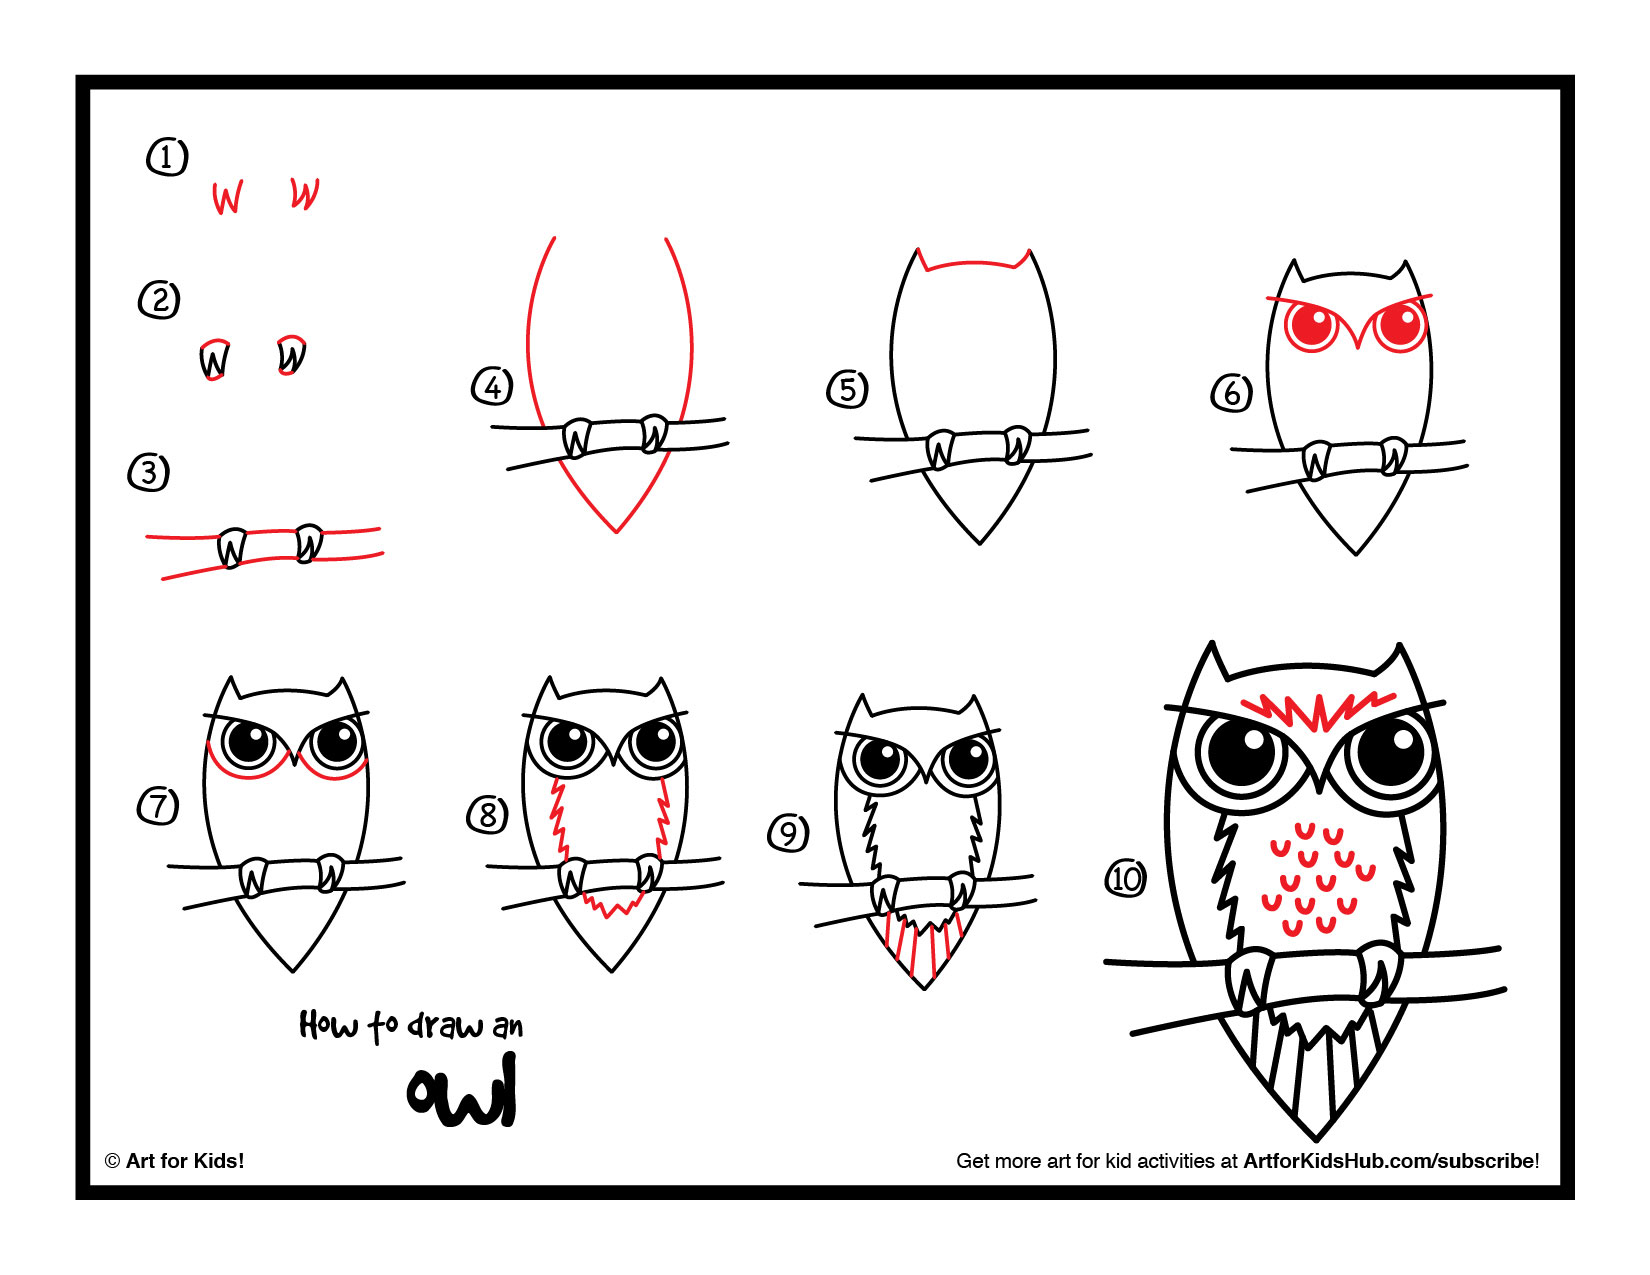 How To Draw An Owl How To Instructions